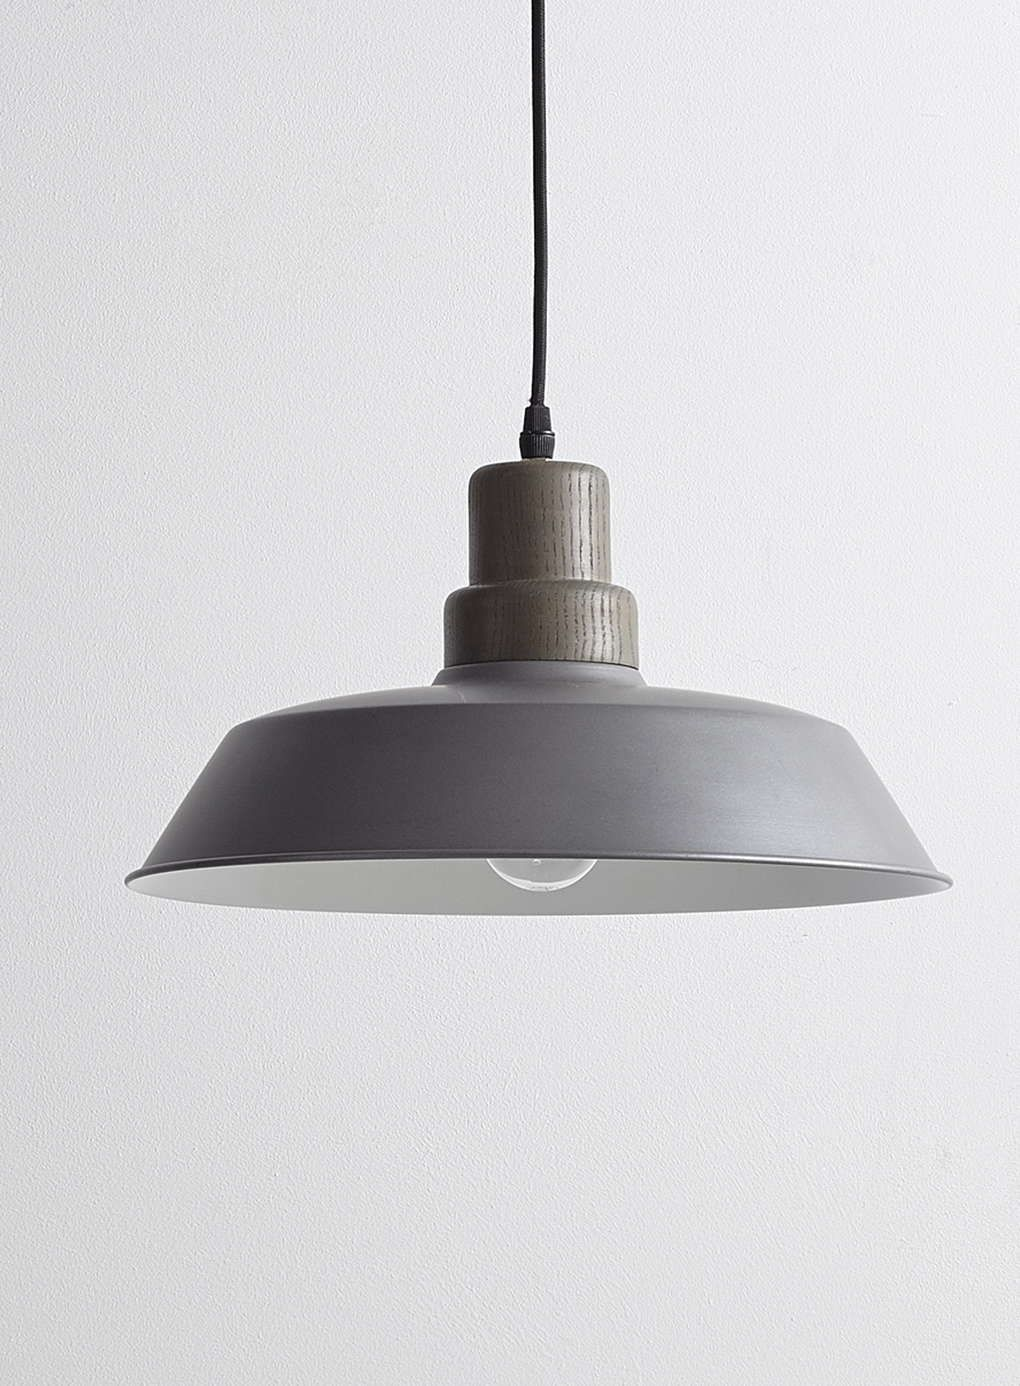 Cocos diner pendant light bhs lighting pinterest bhs cocos diner pendant light bhs mozeypictures Image collections